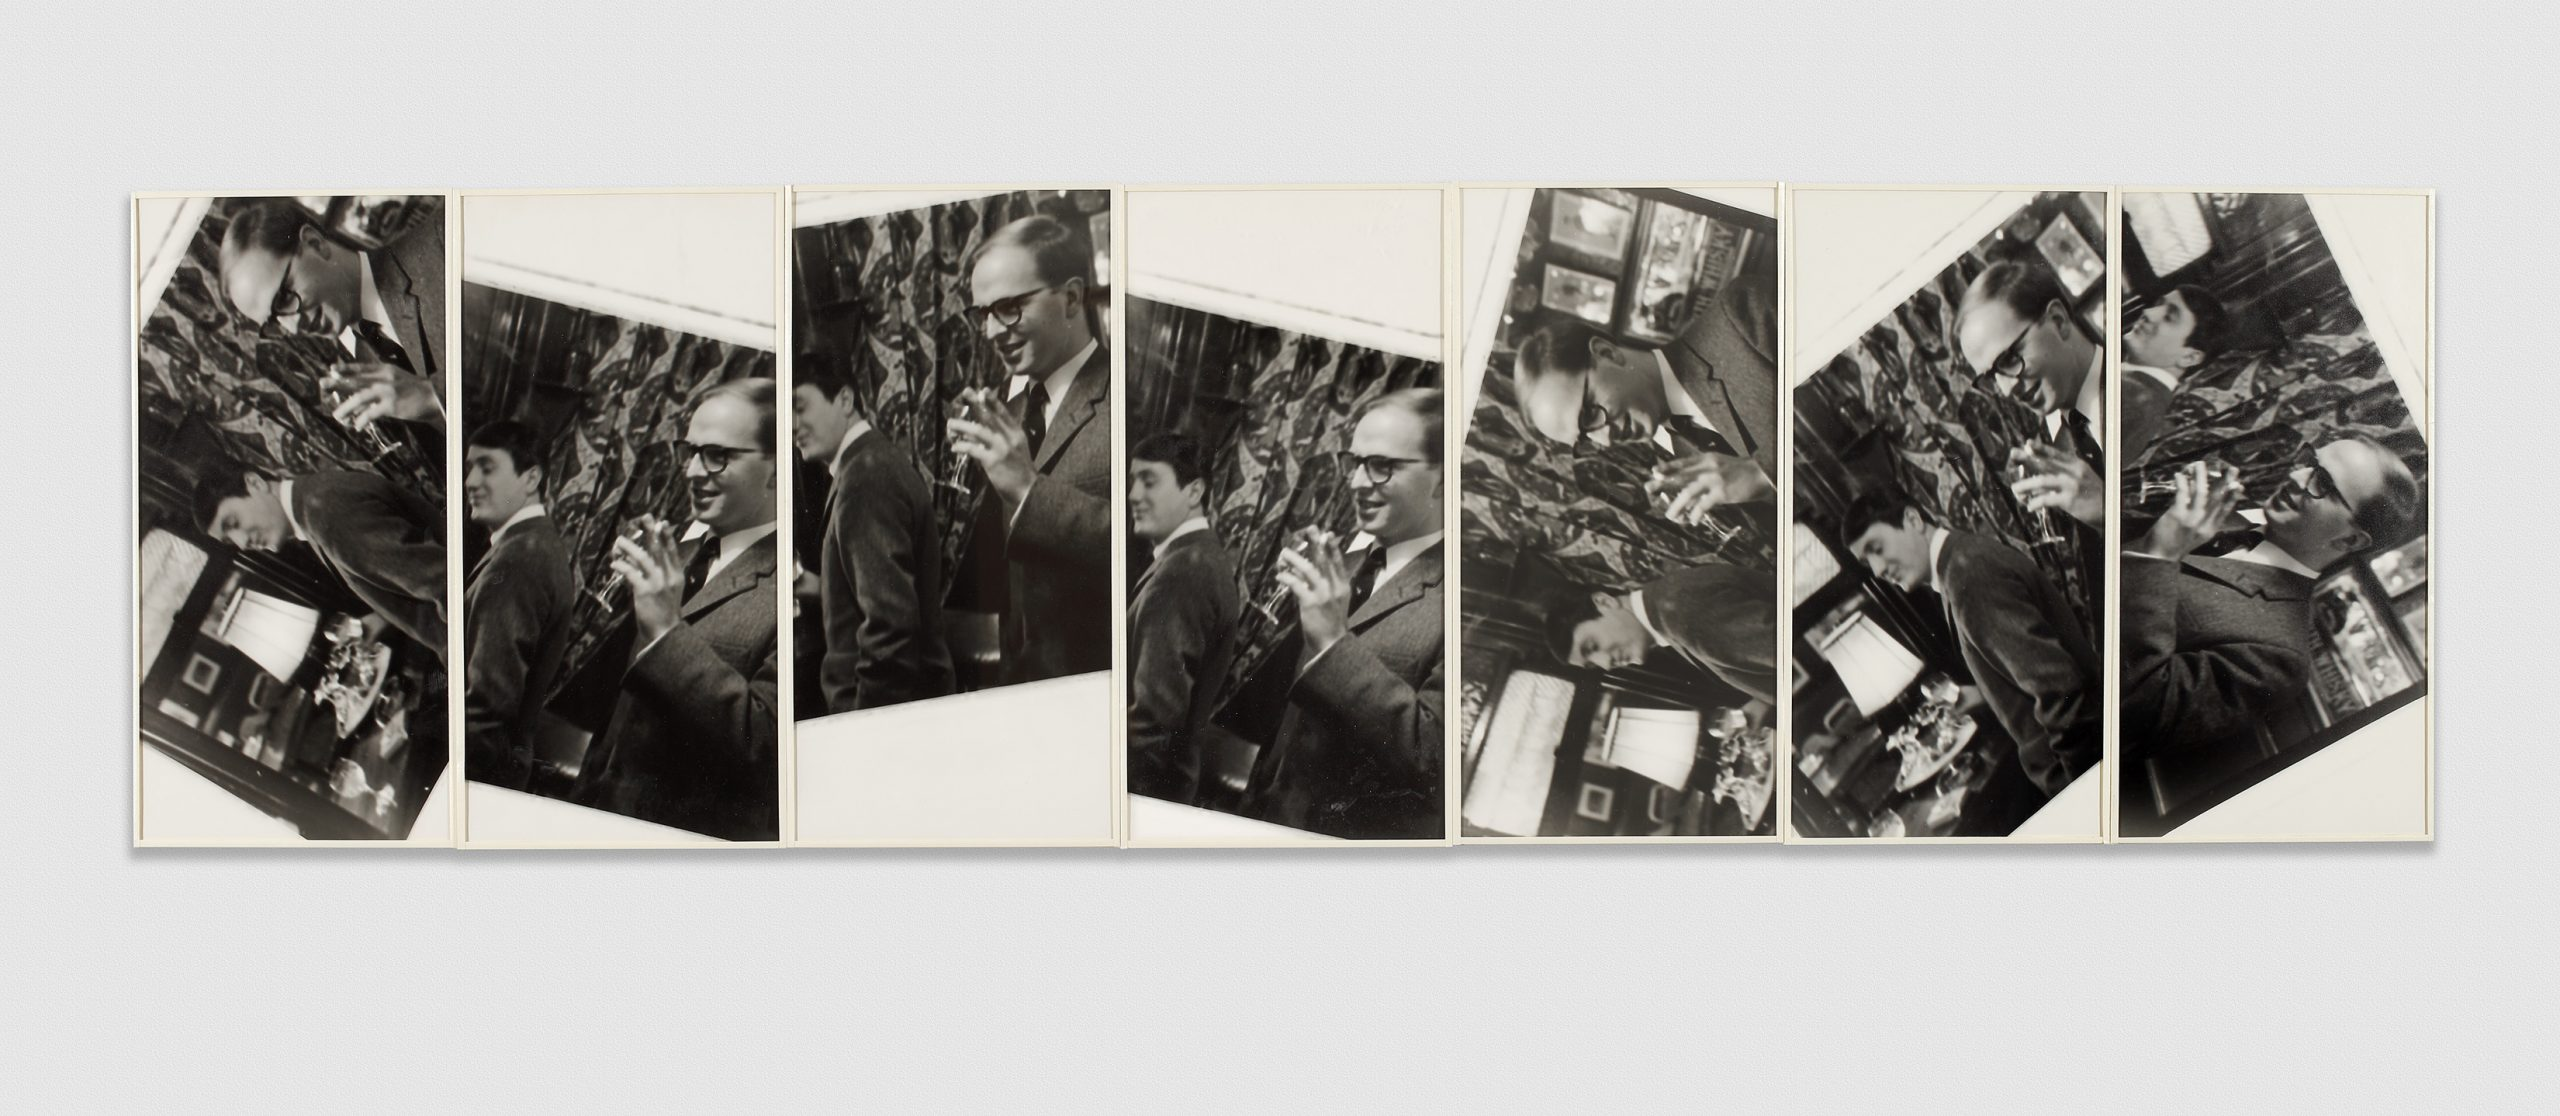 Gilbert & George A Toast, 1973 Gelatin silver prints in artists' frames 7 parts, 51.5 x 180.5 cm; (20 1/4 x 71 1/8 in.) total